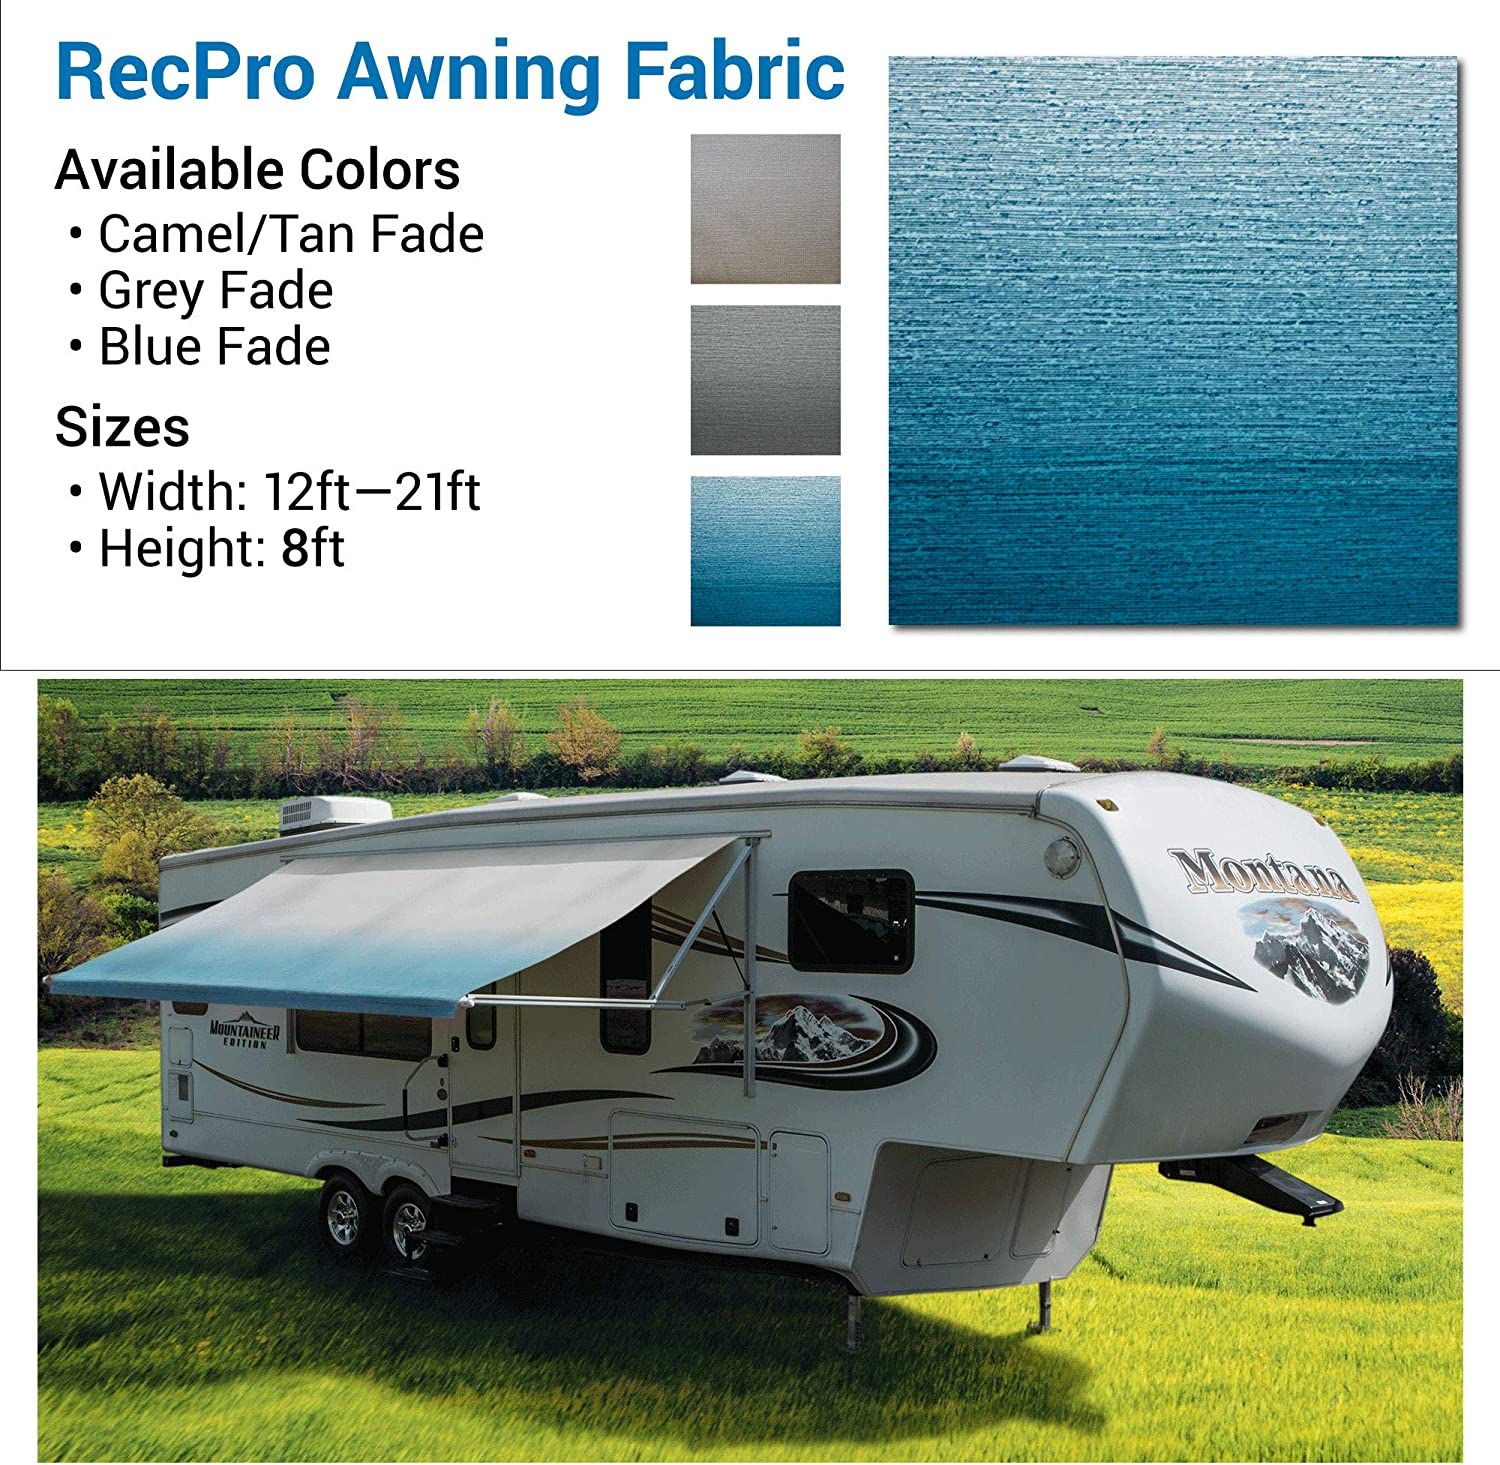 13 Foot Camper Awning 13 Feet, Tan Fade Tan Color RecPro RV Awning Fabric 96 Length RV Awning Replacement 8 Premium Vinyl